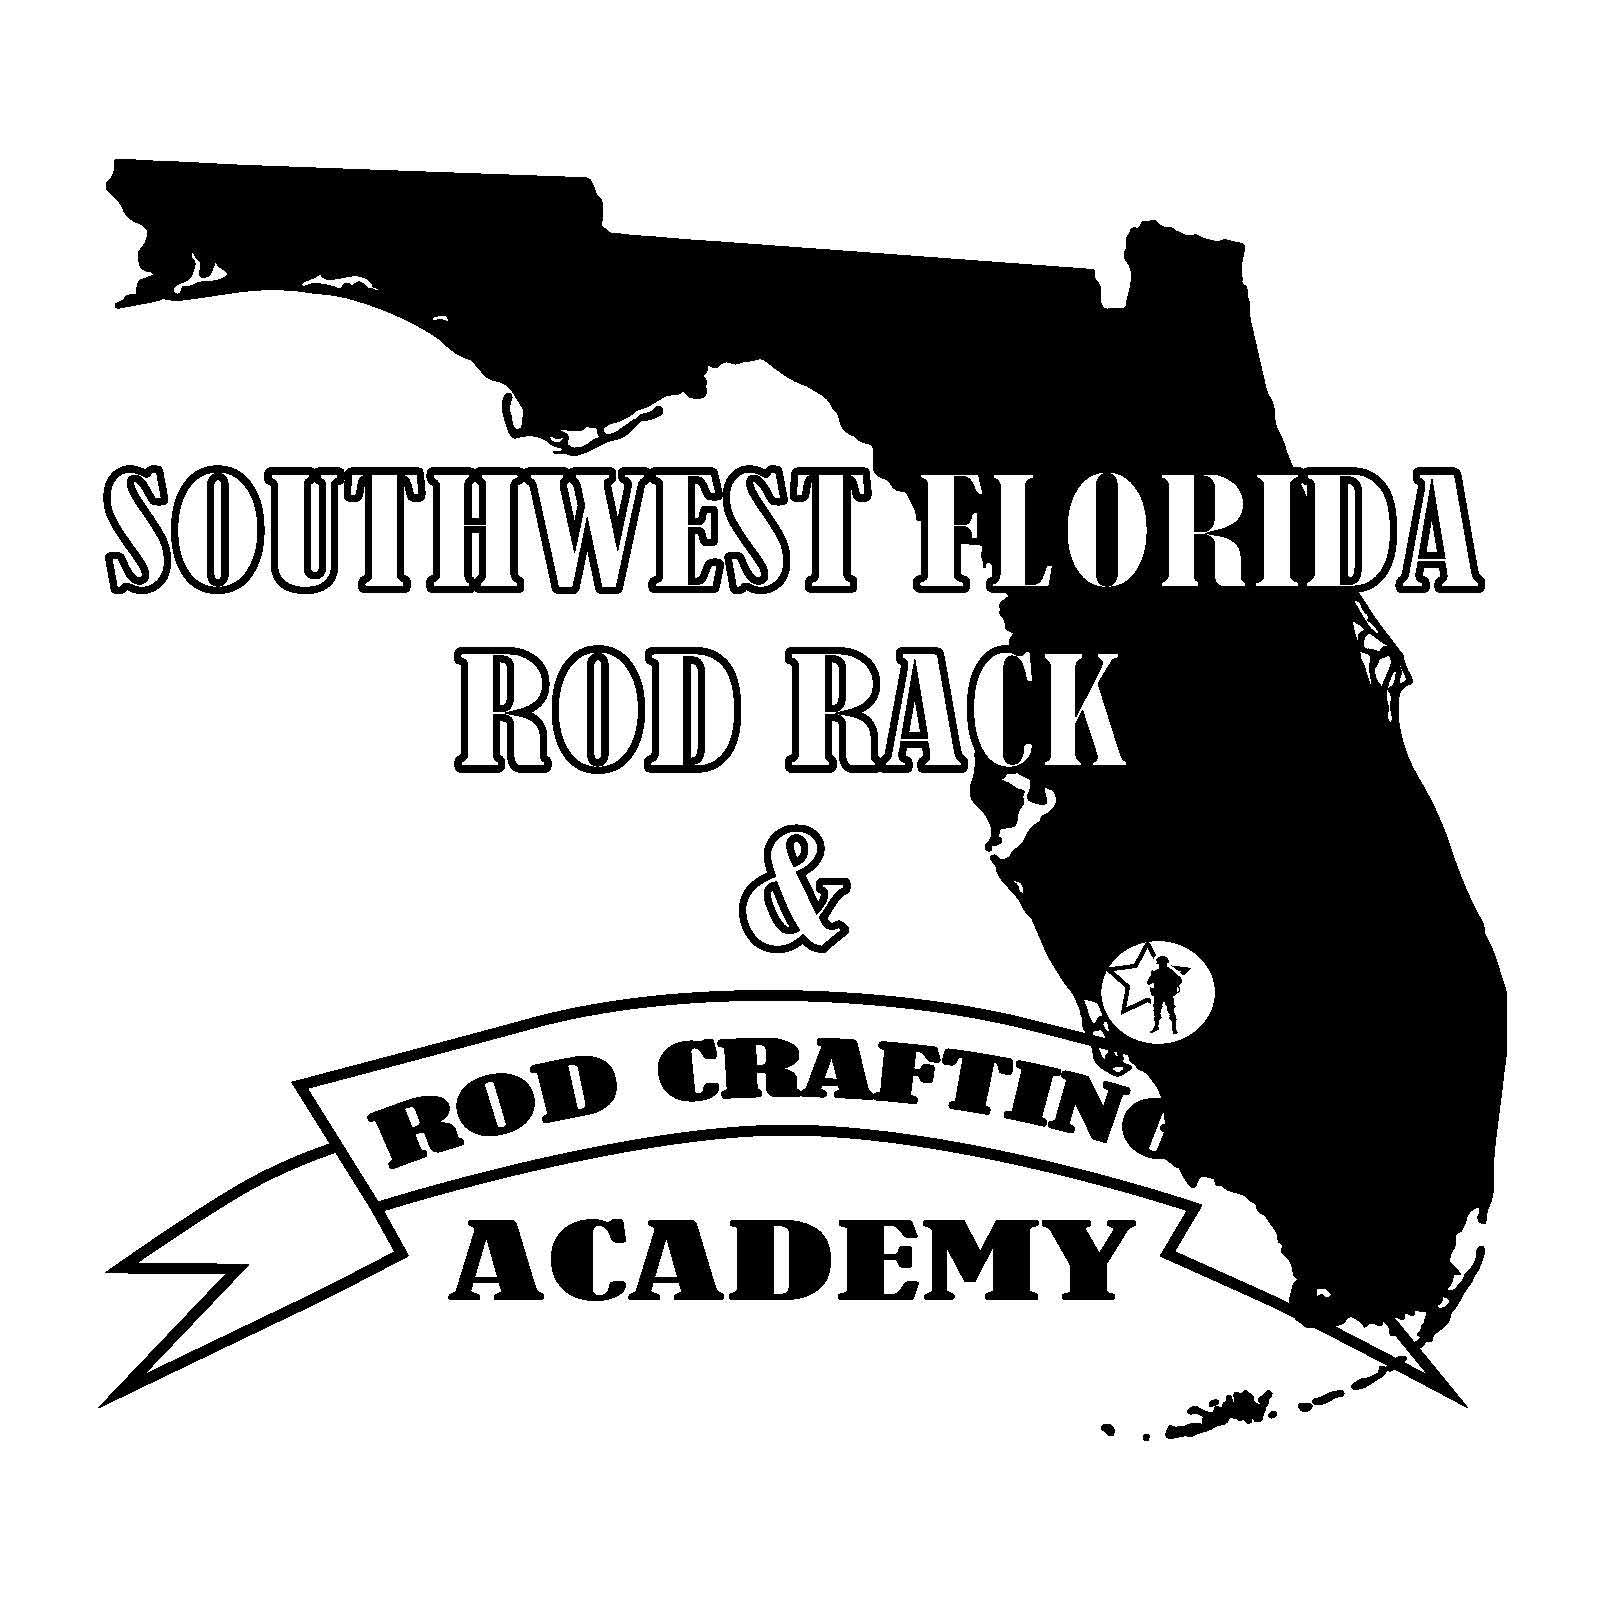 SOUTHWEST FLORIDA ROD BUILDERS.jpg